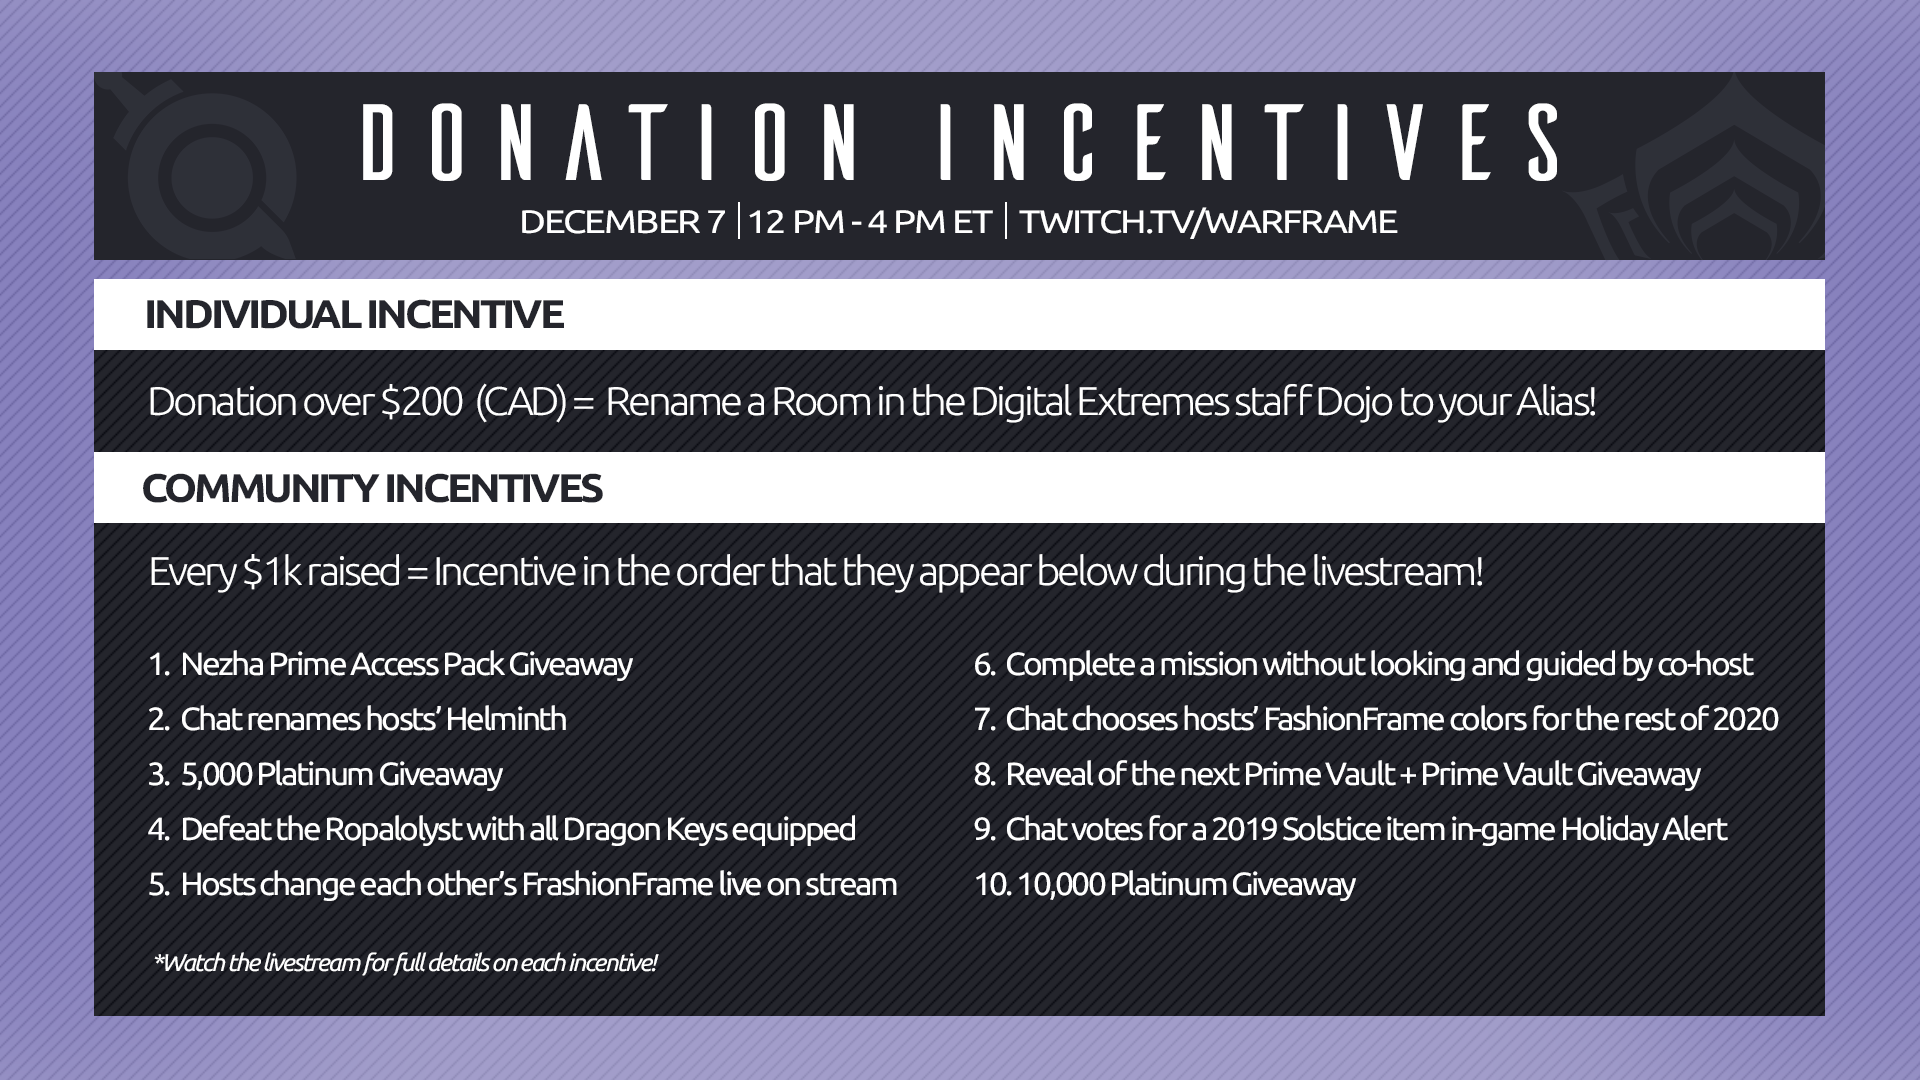 QTCC December Incentives_V3.png